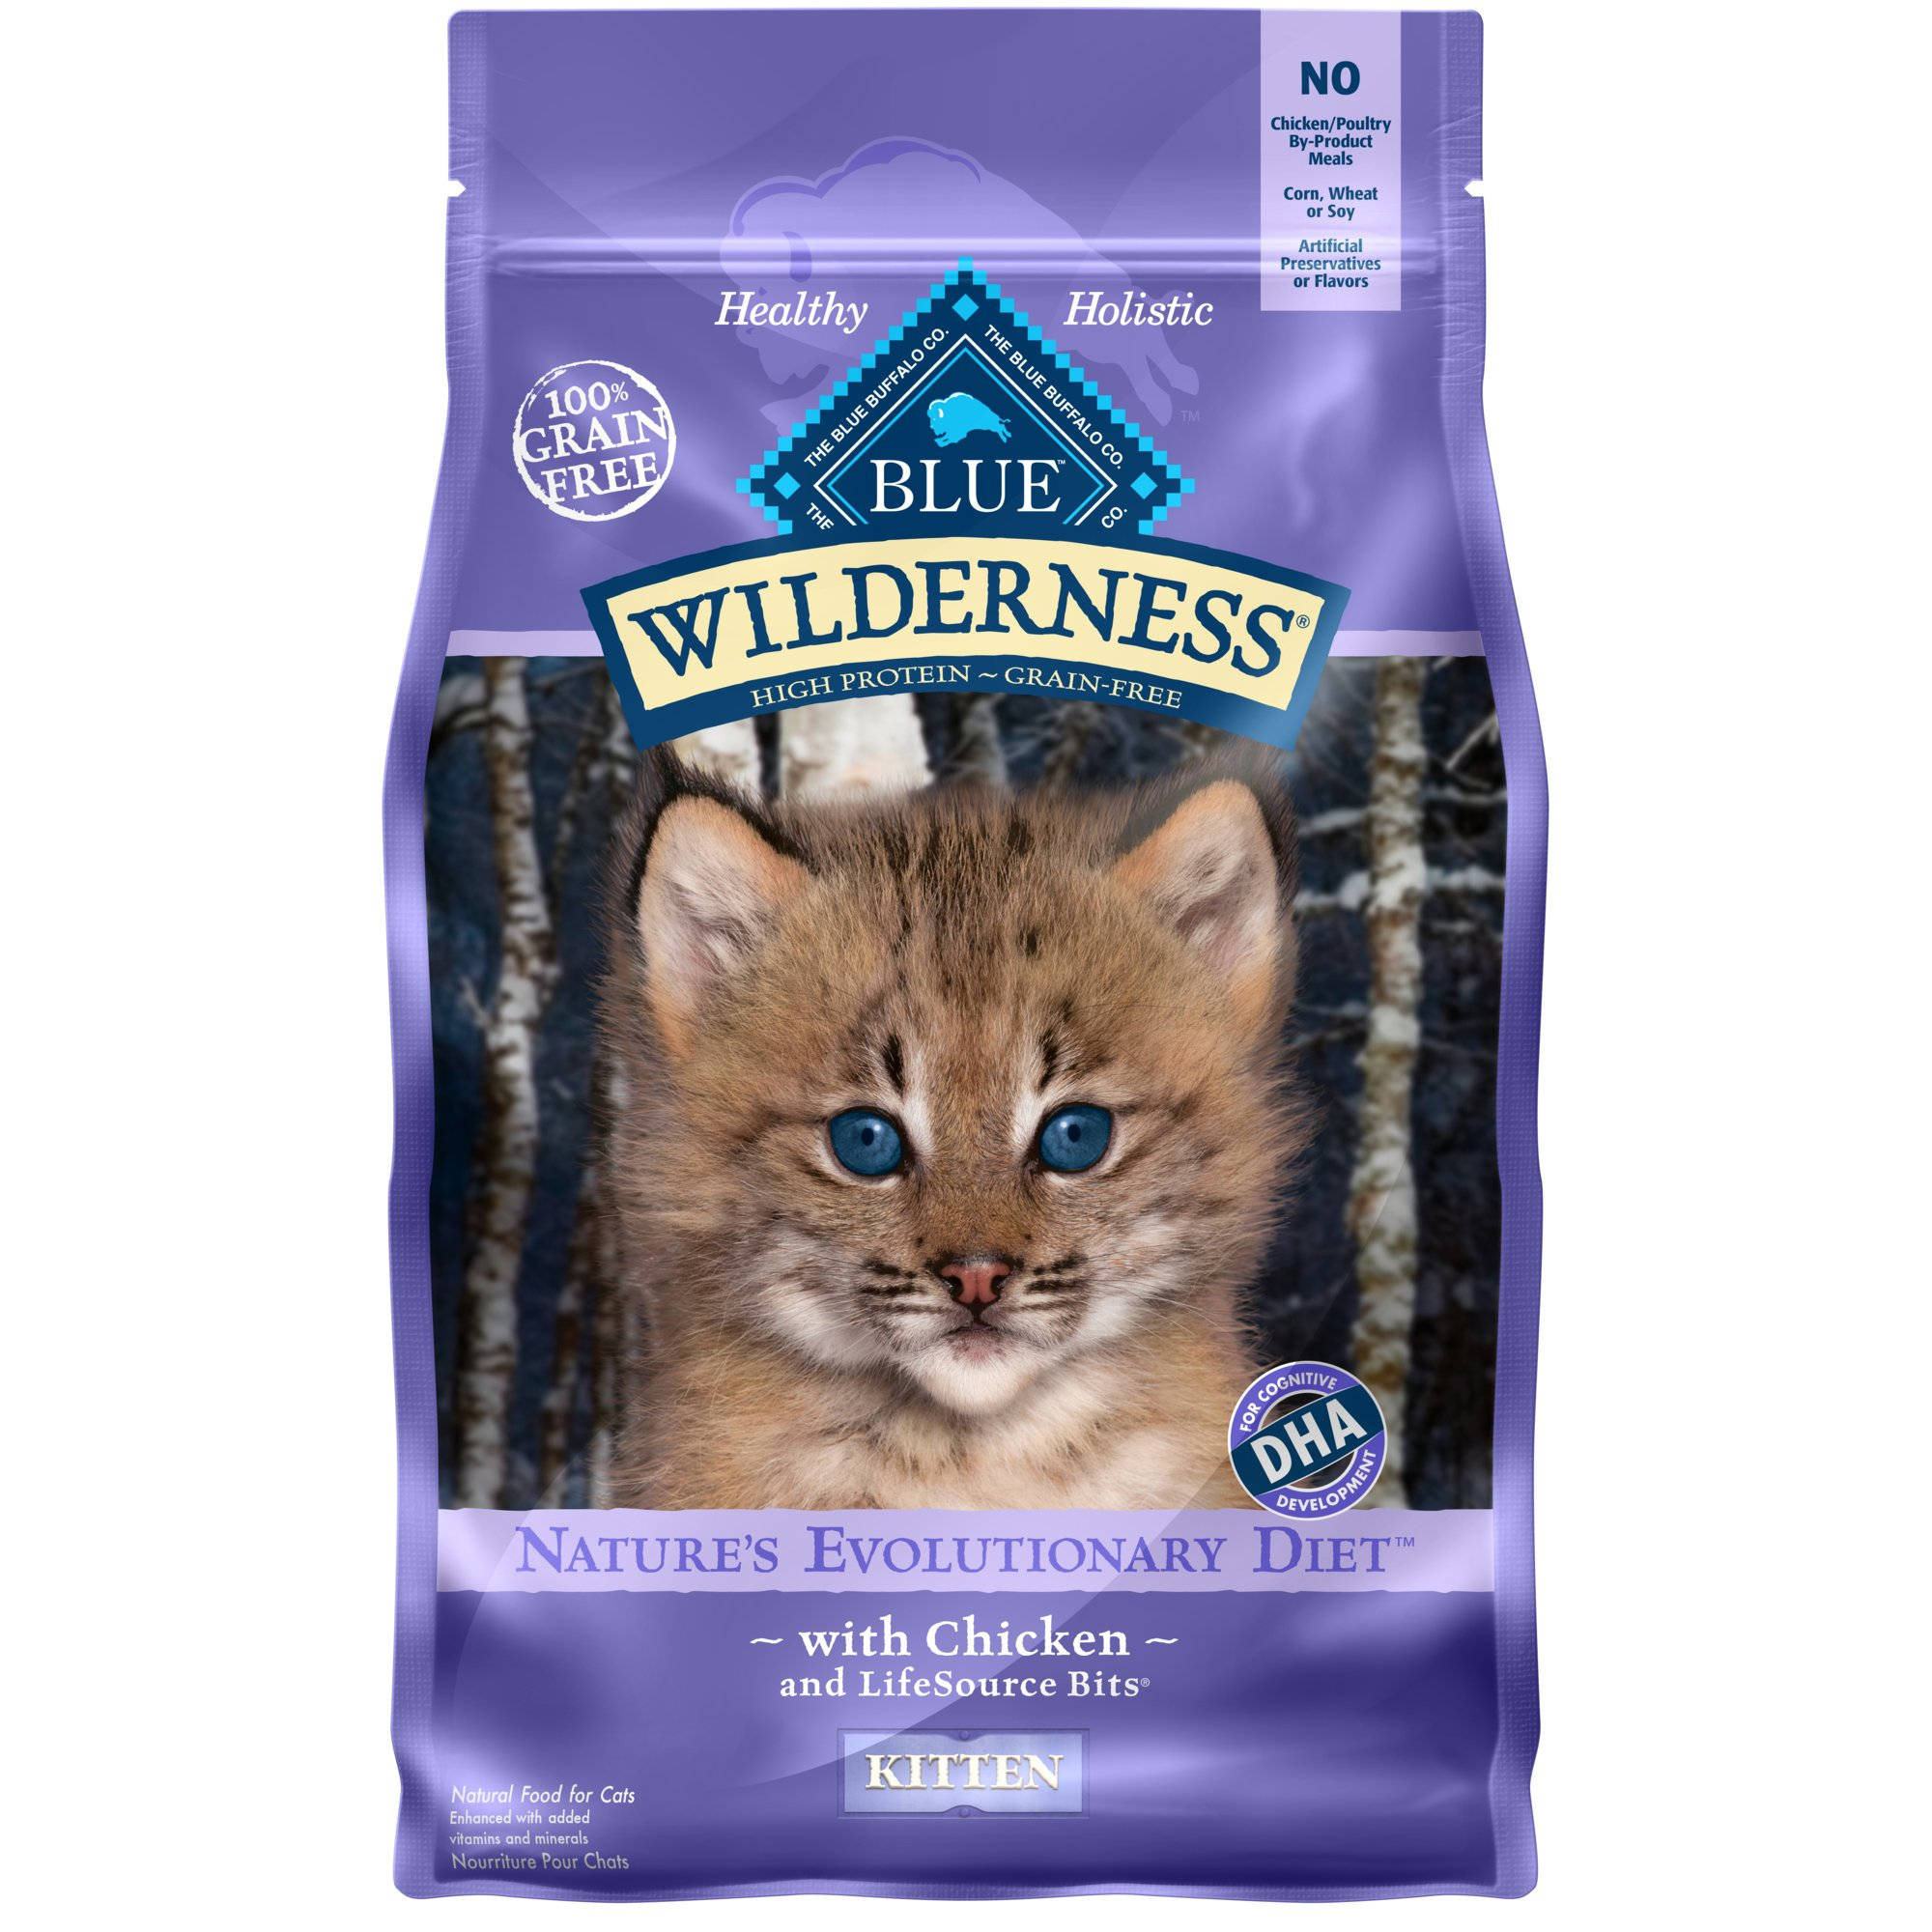 Blue Buffalo Blue Wilderness Kitten Chicken Recipe Dry Cat Food | Petco at Petco in Braselton, GA | Tuggl